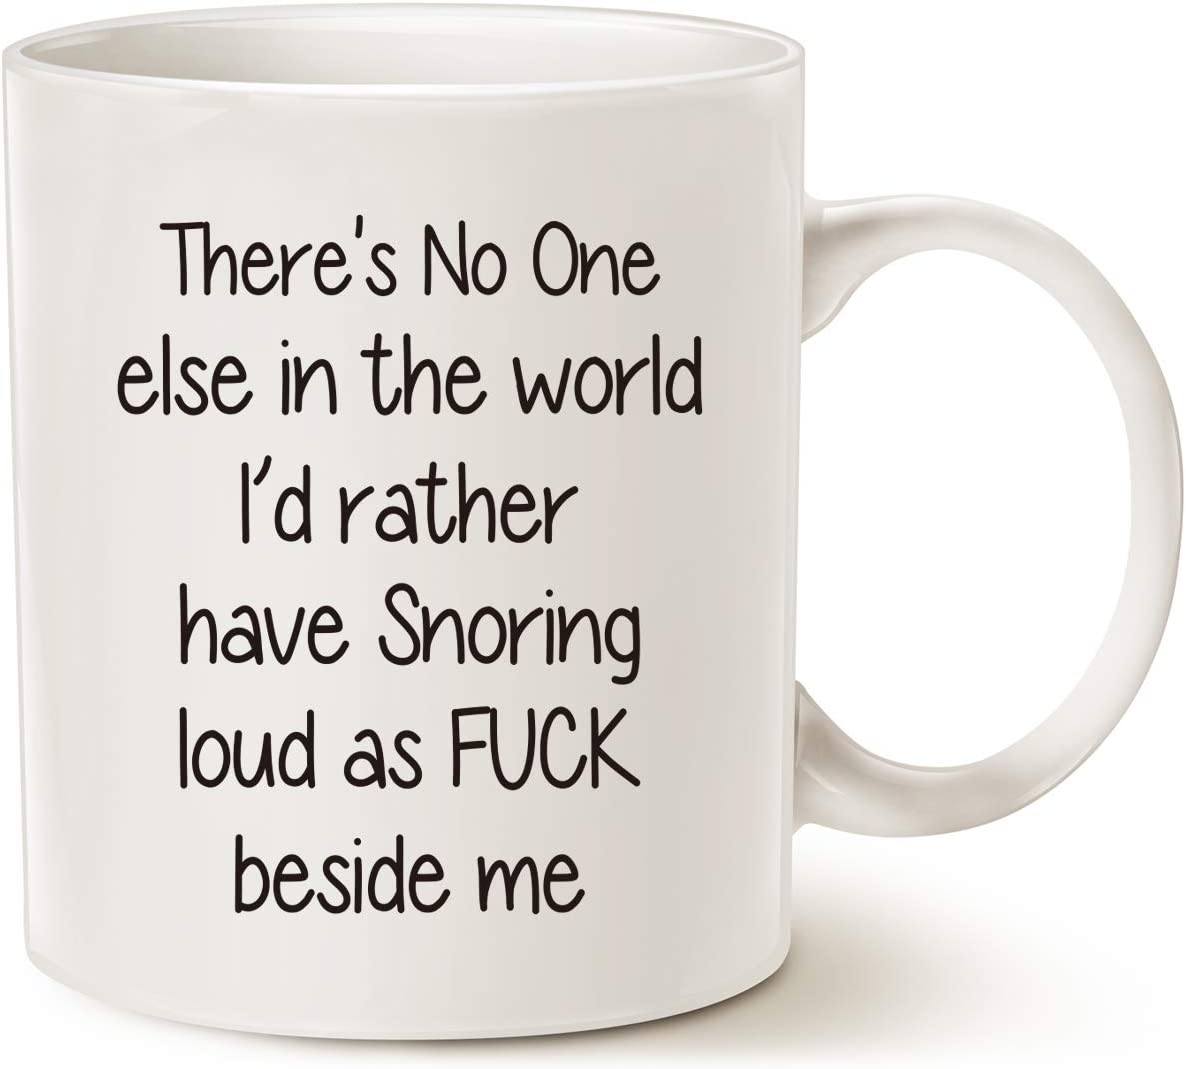 MAUAG Funny Snoring Mugs for Husband Who Snore, Best Gift for Valentine's Day and Wedding Anniversary White 11 Oz